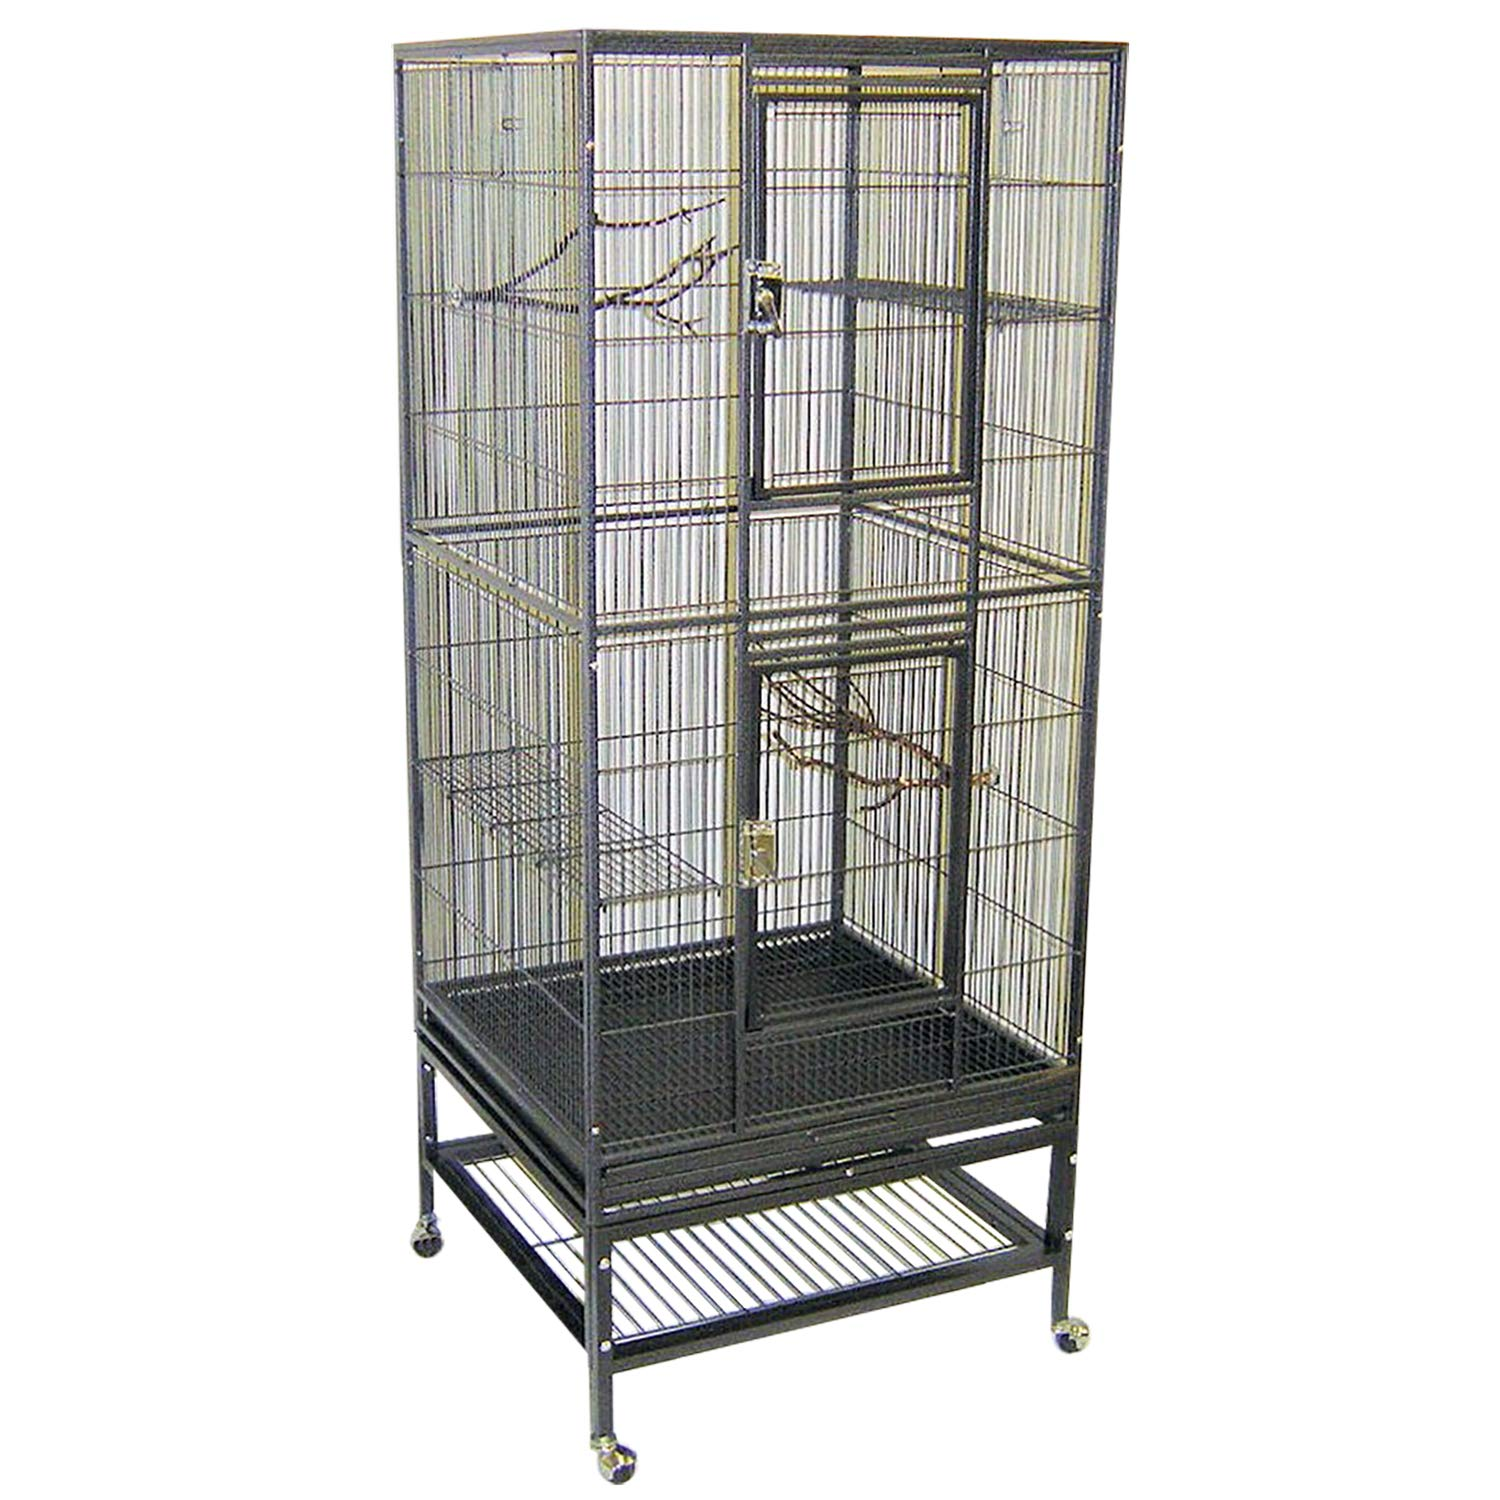 Exotic Nutrition Madagascar Cage - 60'' Tall Durable Spacious Metal Cage - for Sugar Gliders, Squirrels, Marmosets & Other Small Pets by Exotic Nutrition